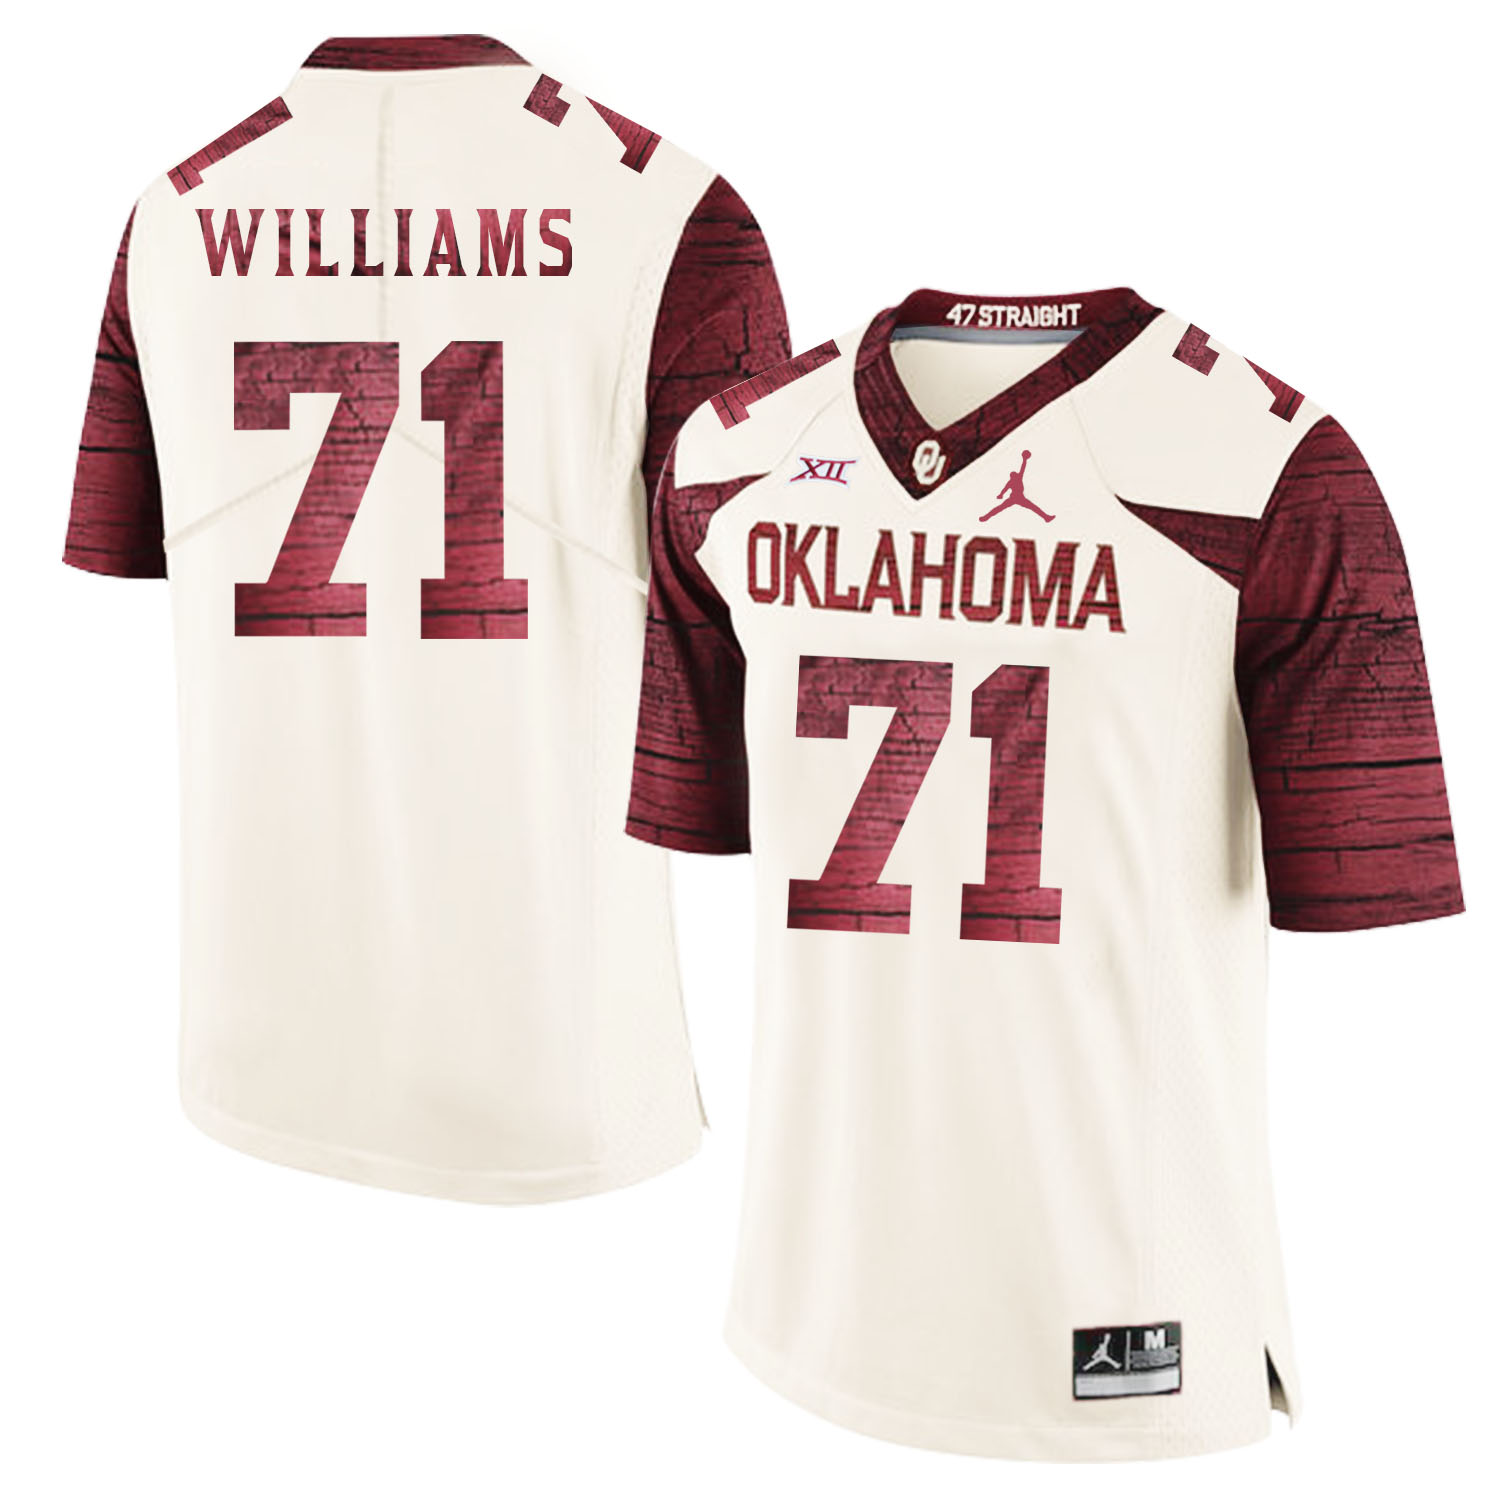 Oklahoma Sooners 71 Trent Williams White 47 Game Winning Streak College Football Jersey